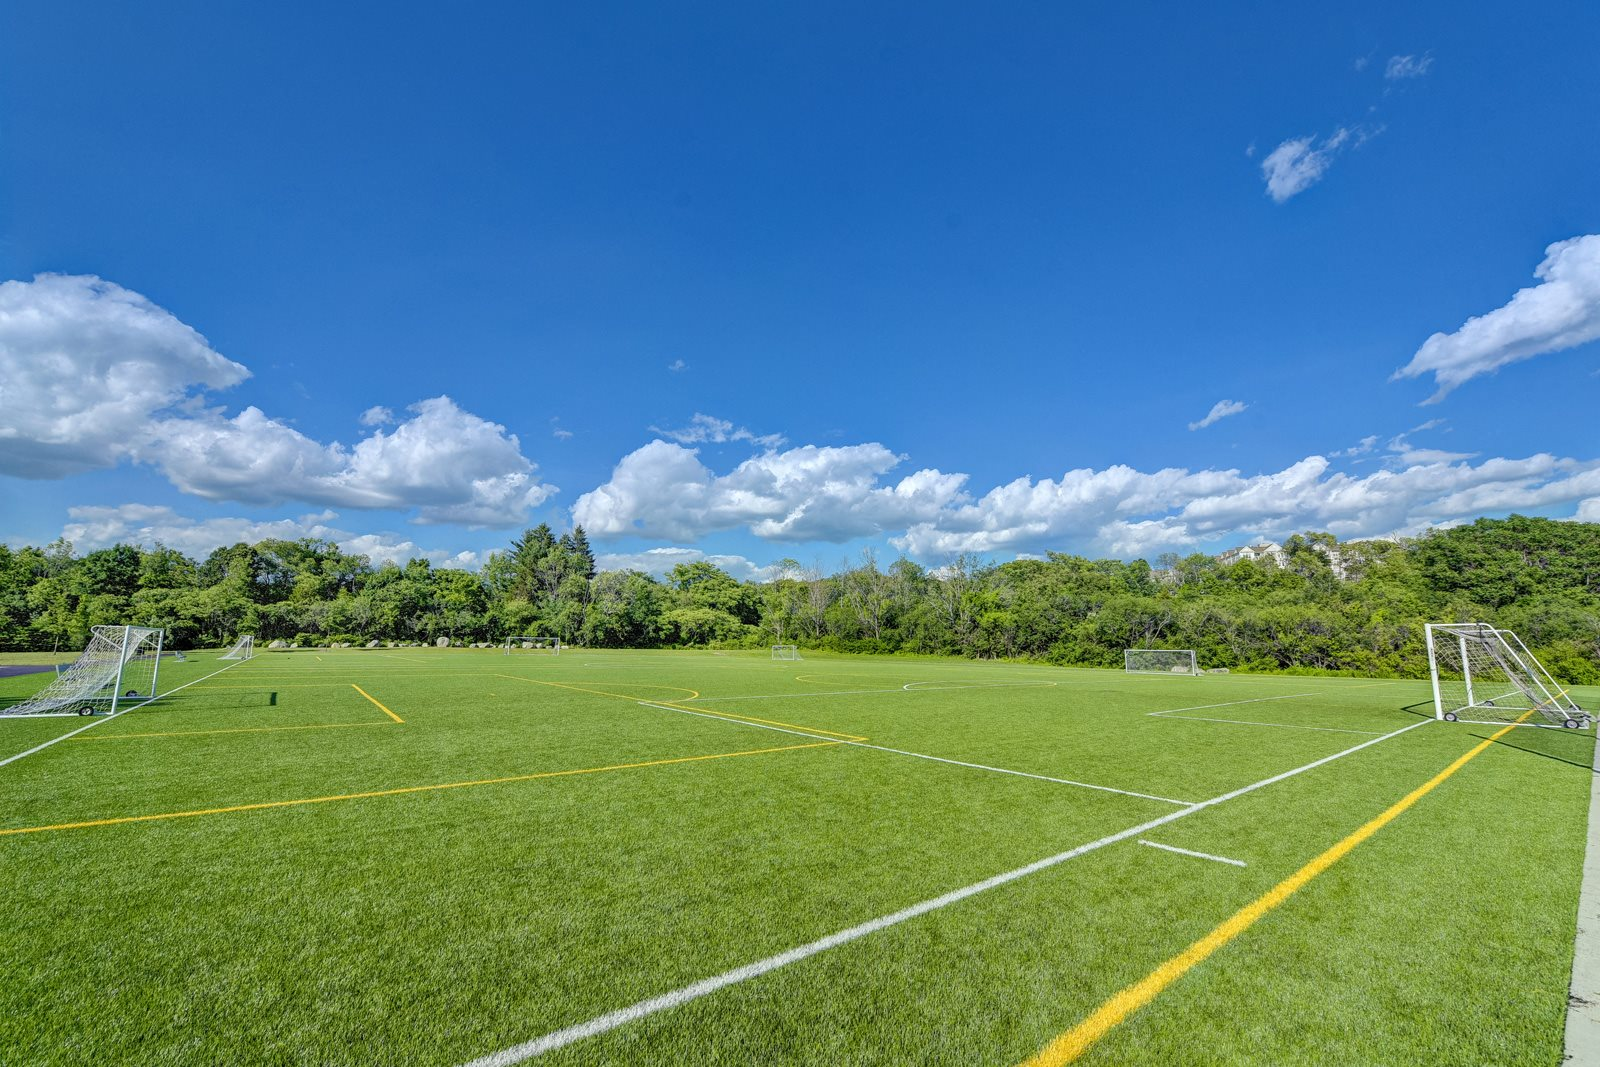 Sports Fields near Windsor Village at Waltham, Waltham, Massachusetts